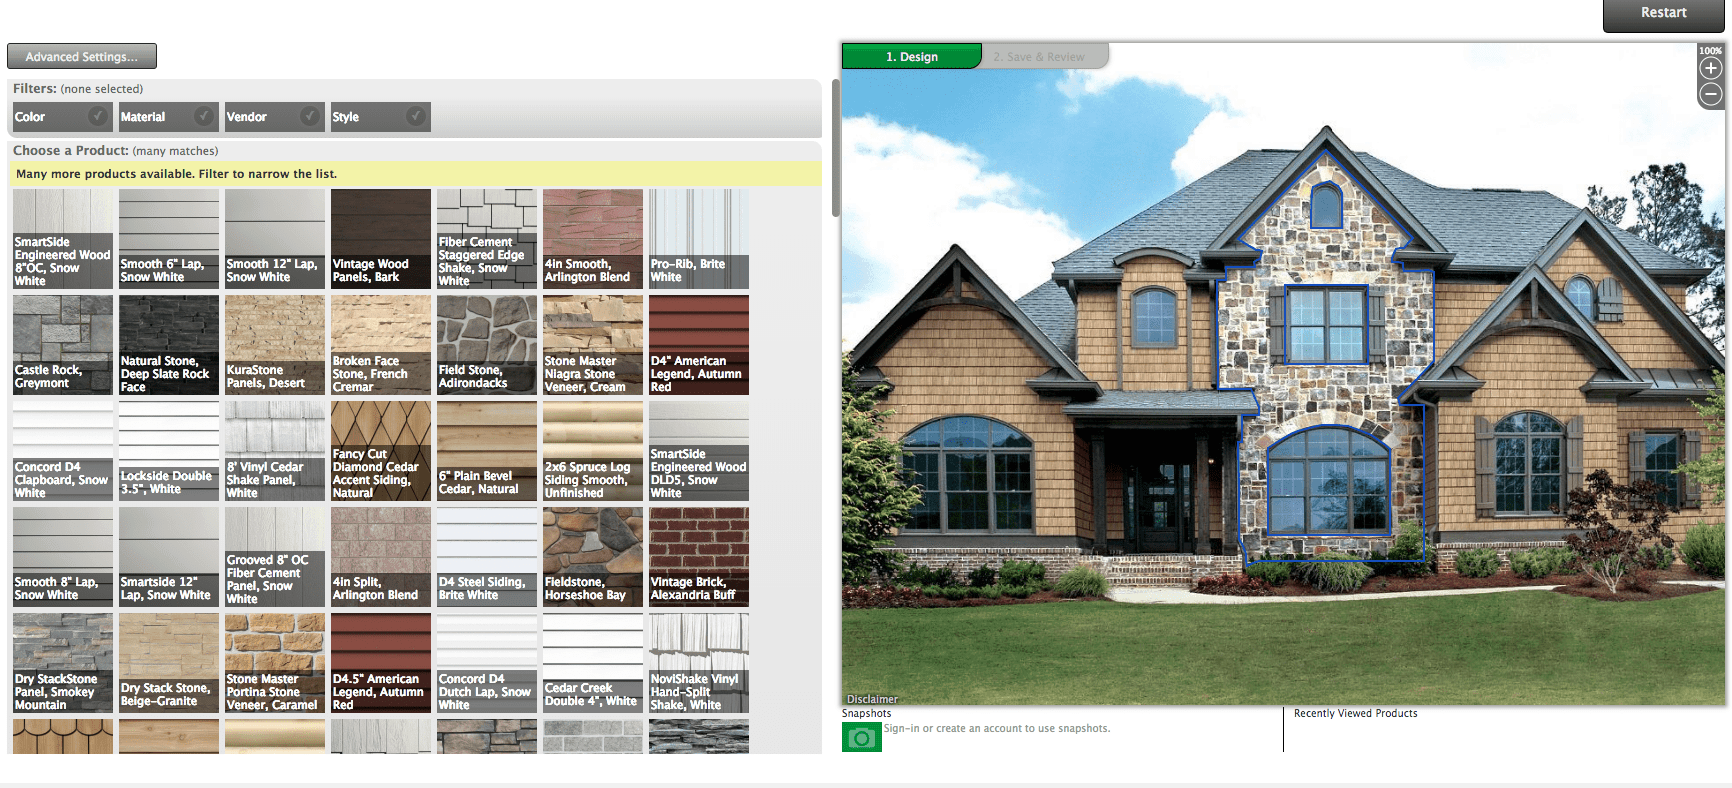 Menards design-it-center home exterior software